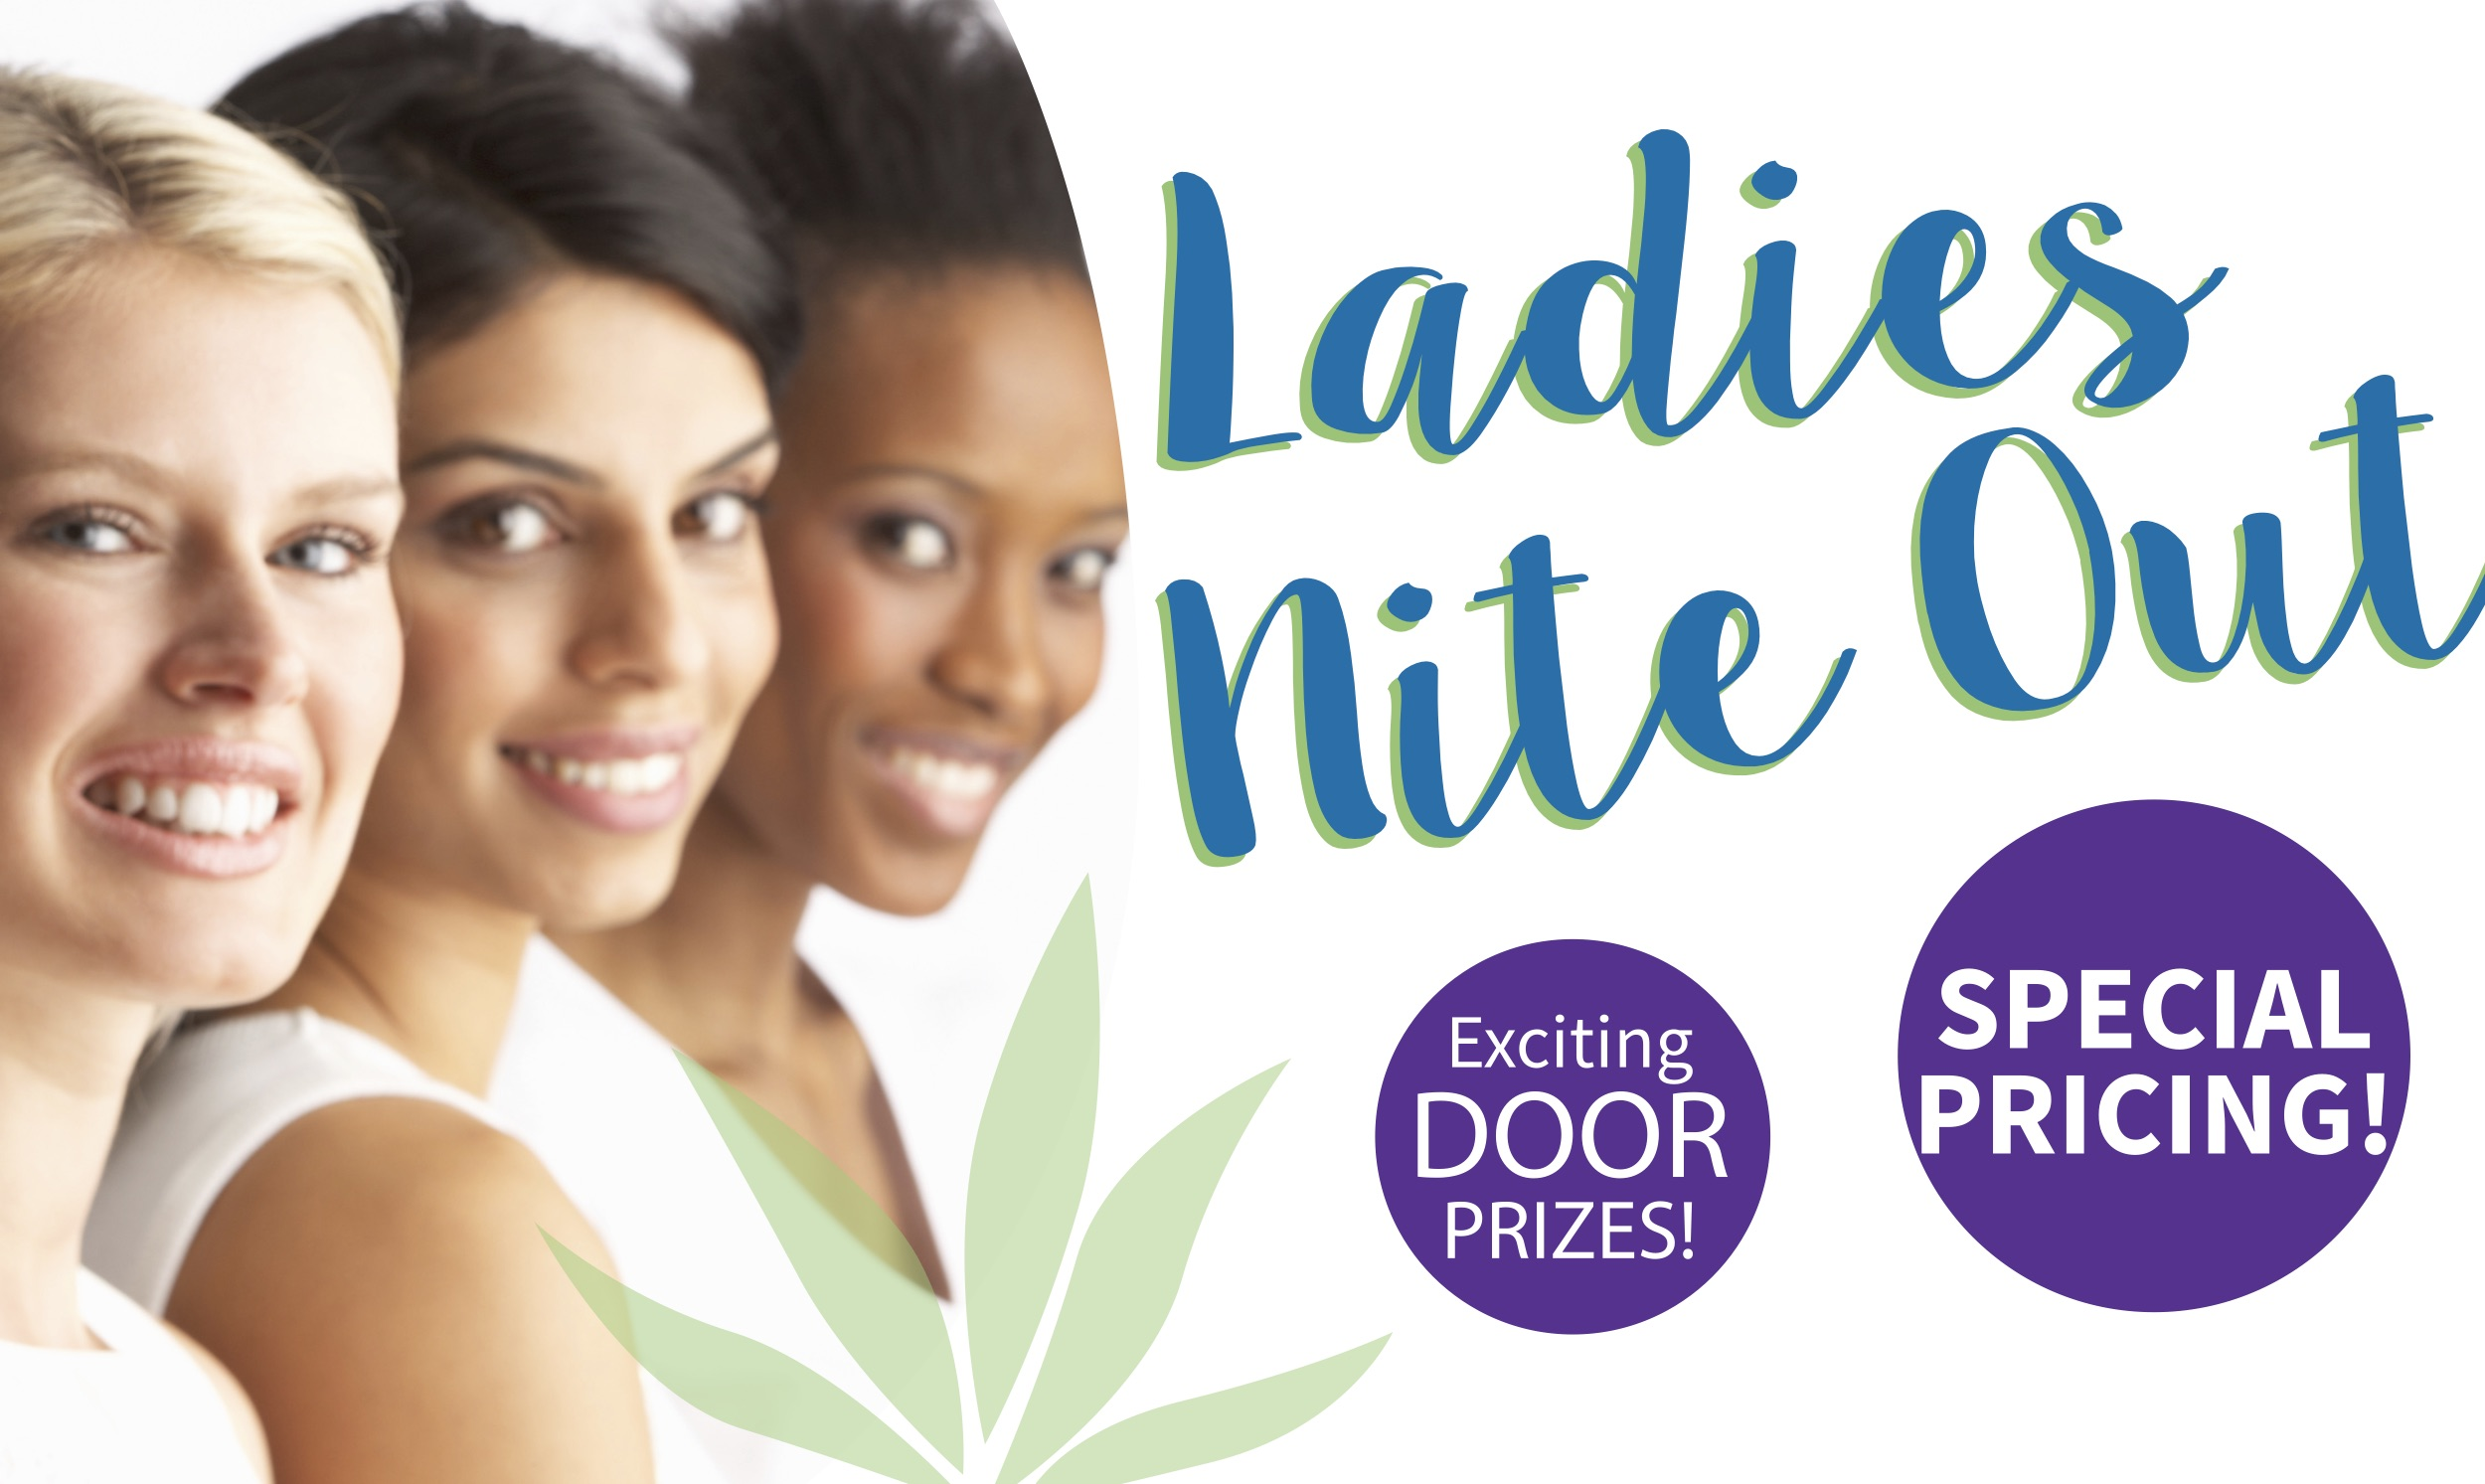 Ladies Nite Out - Exciting Door Prizes & Special Pricing!